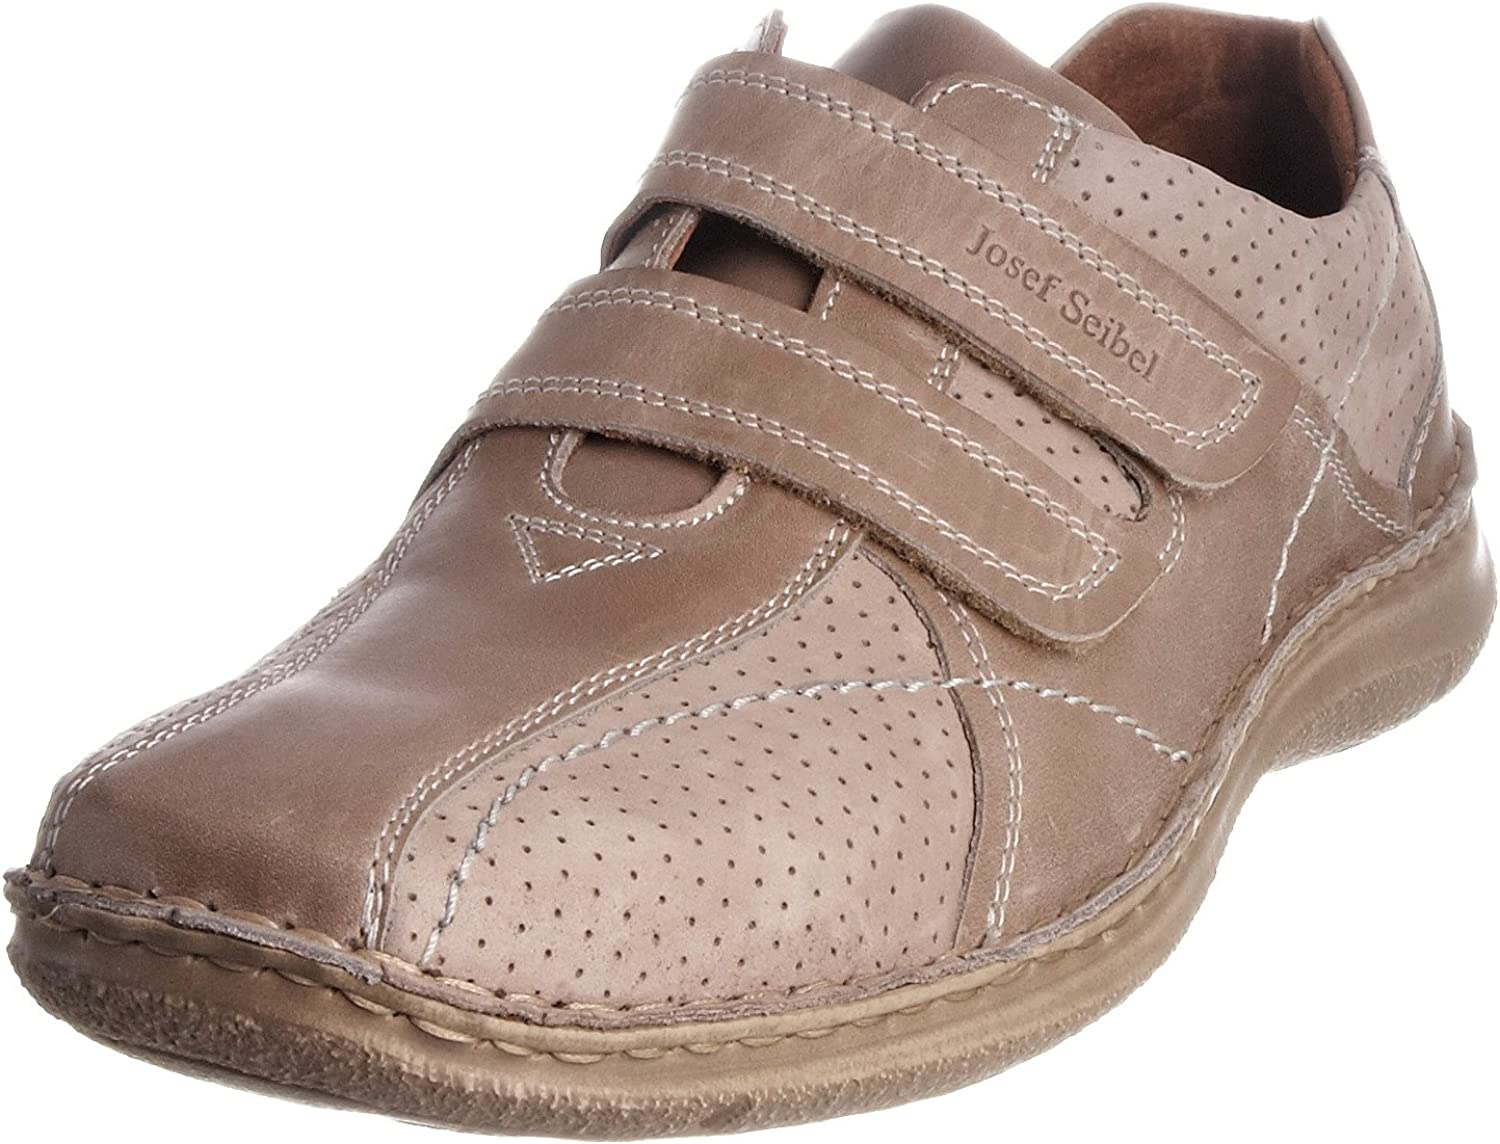 Josef Seibel Men's Albert Slip On